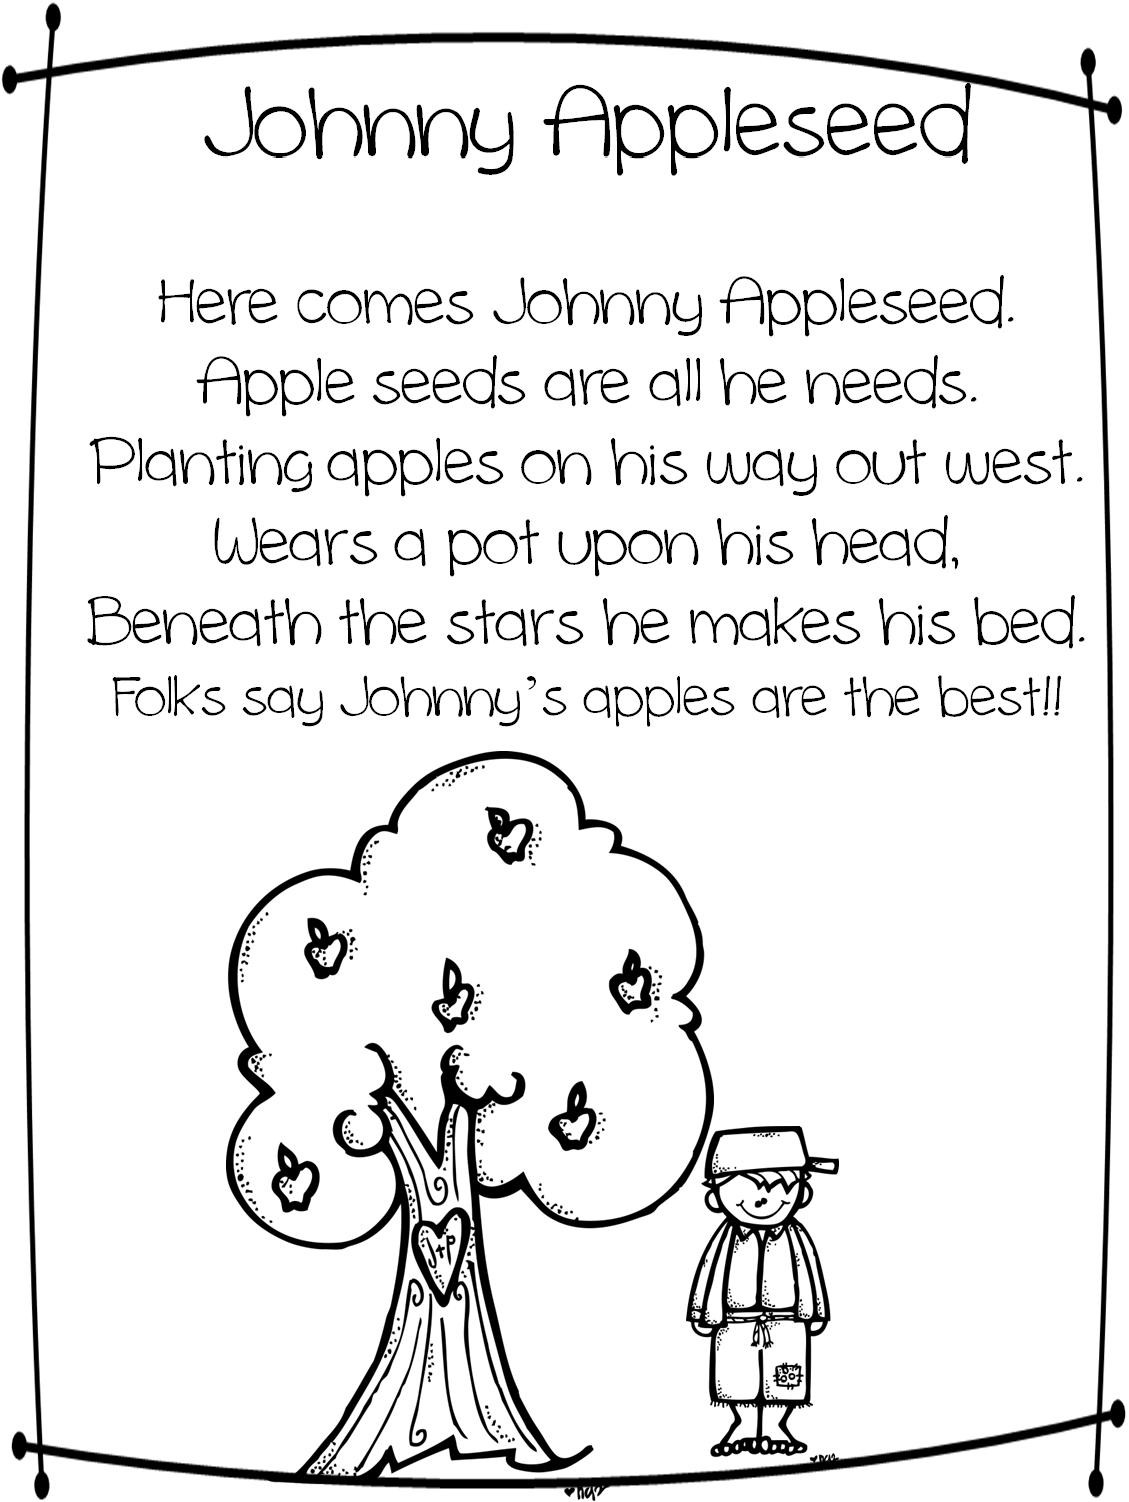 johnny appleseed HD Wallpapers Download Free johnny appleseed